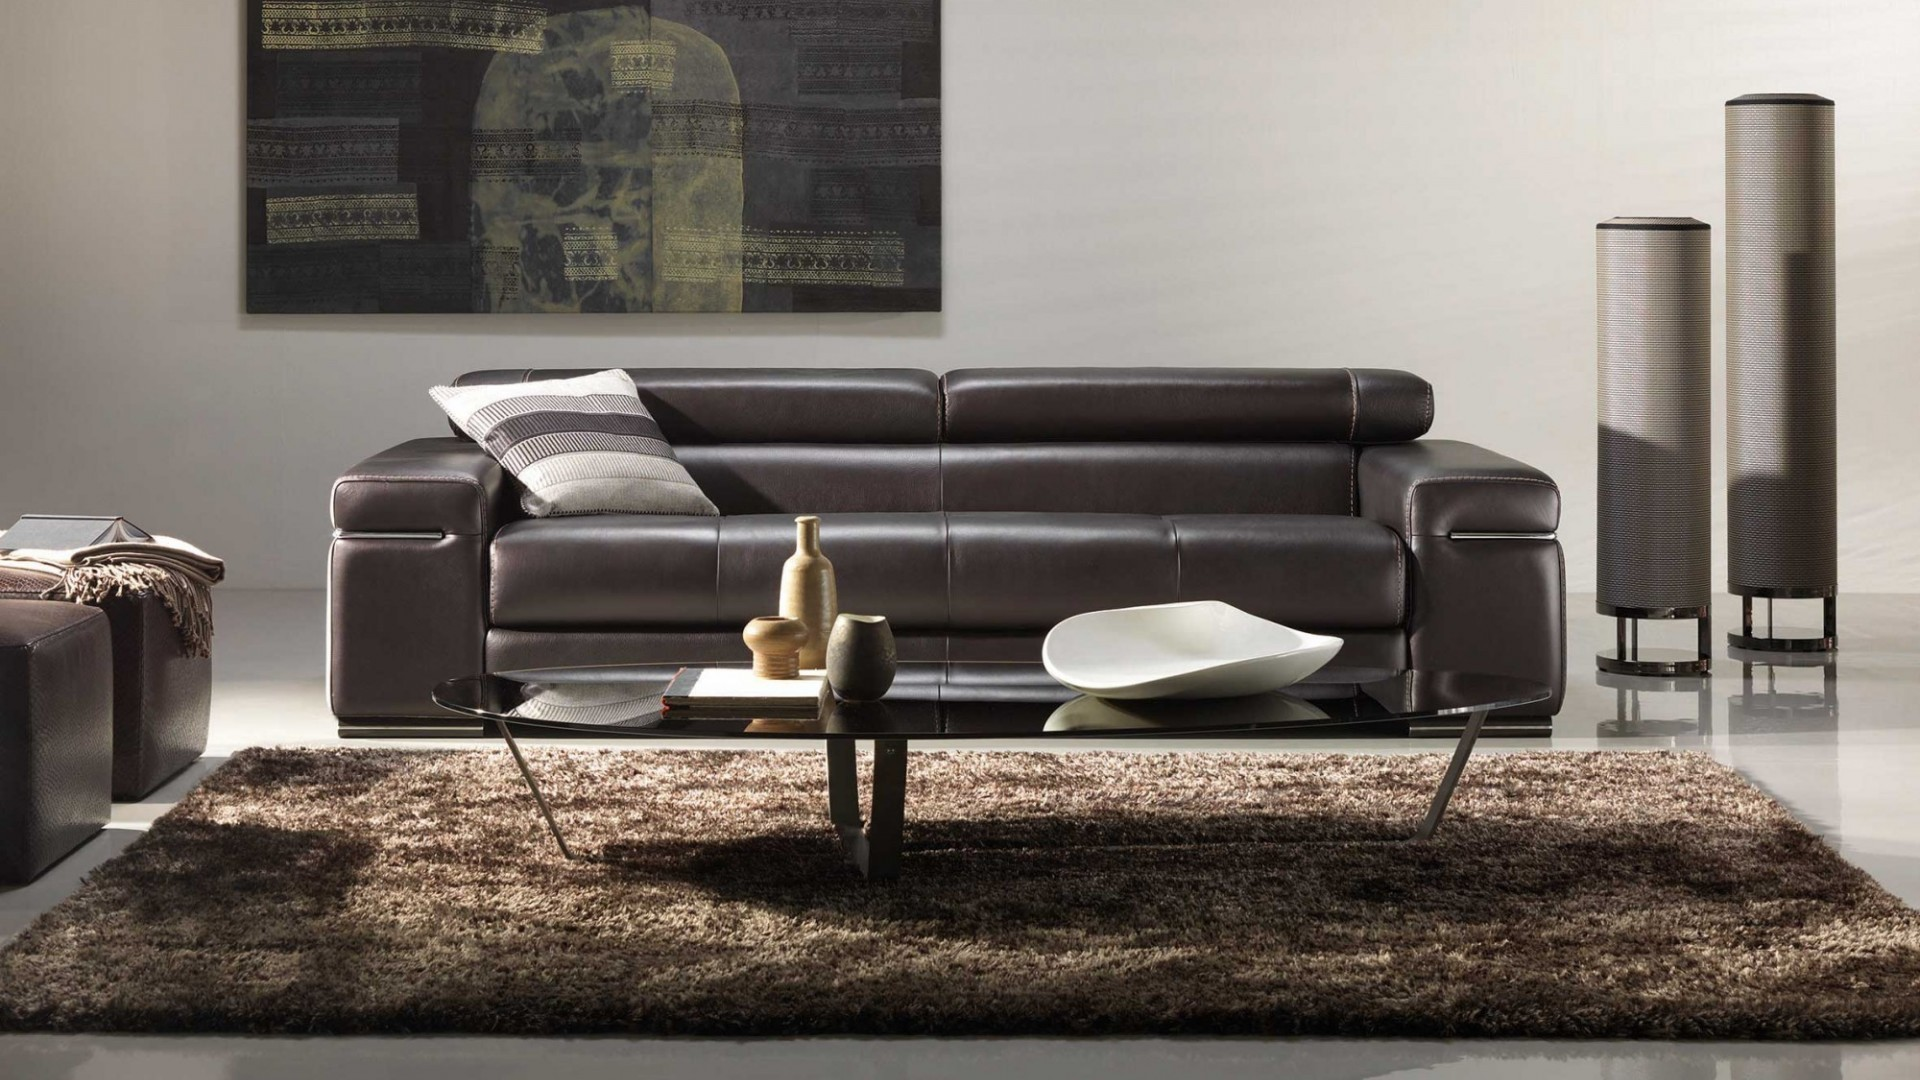 Best Divani By Natuzzi Images - harrop.us - harrop.us